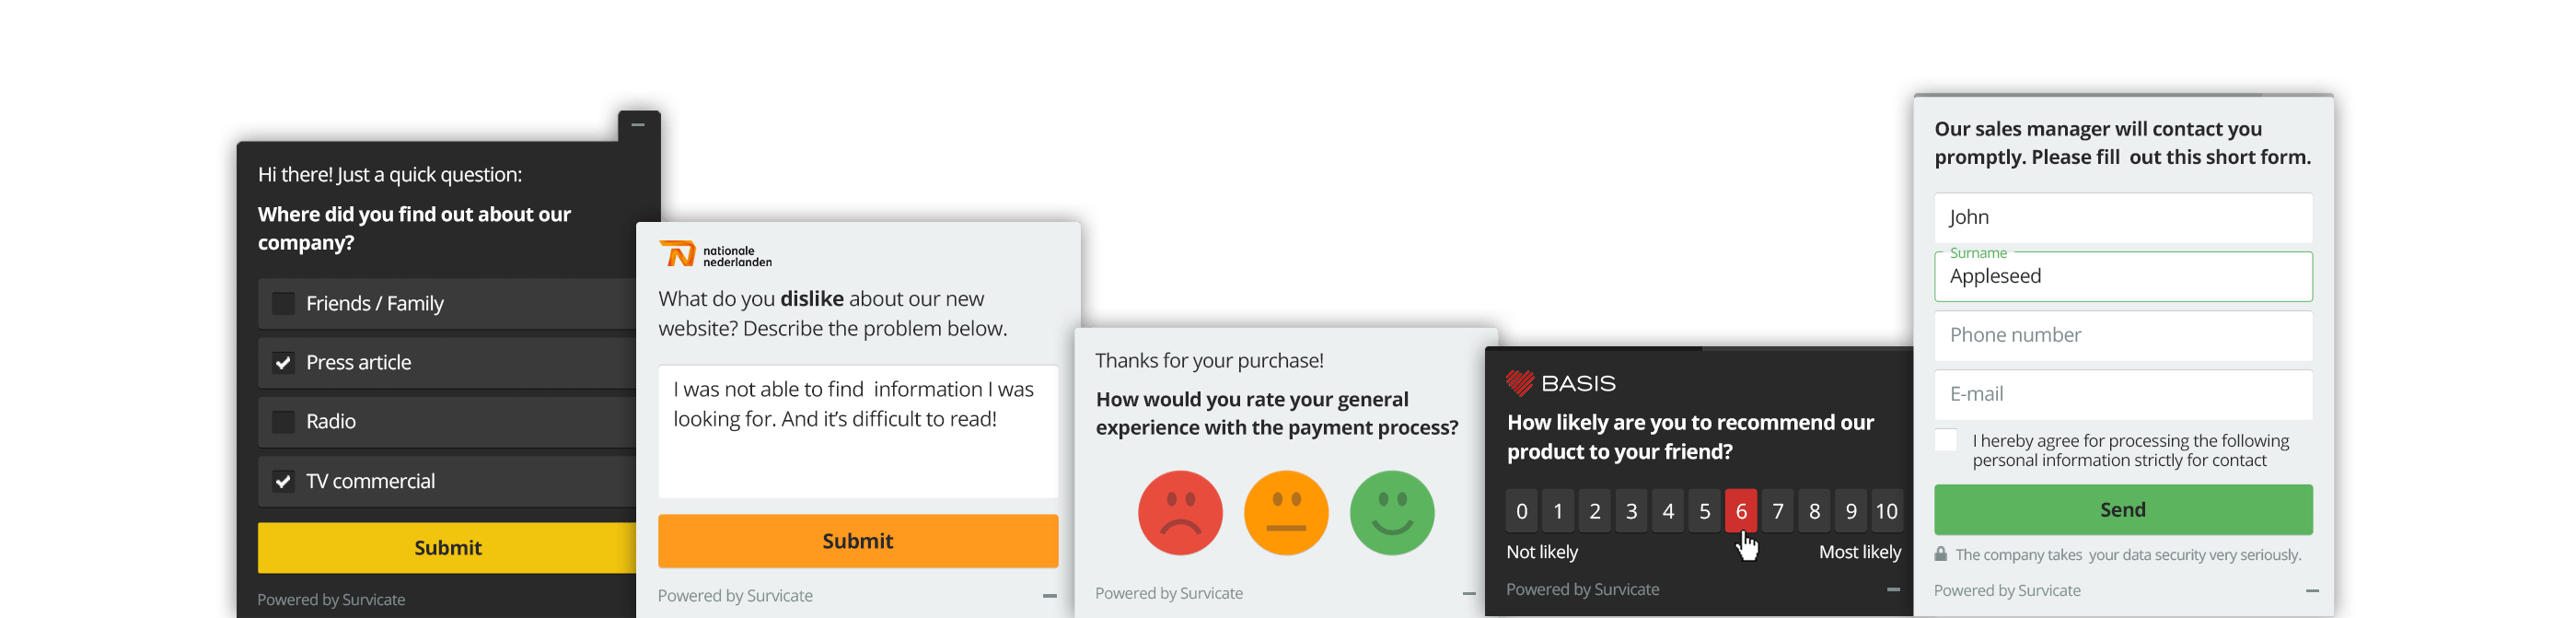 examples of targeted website surveys